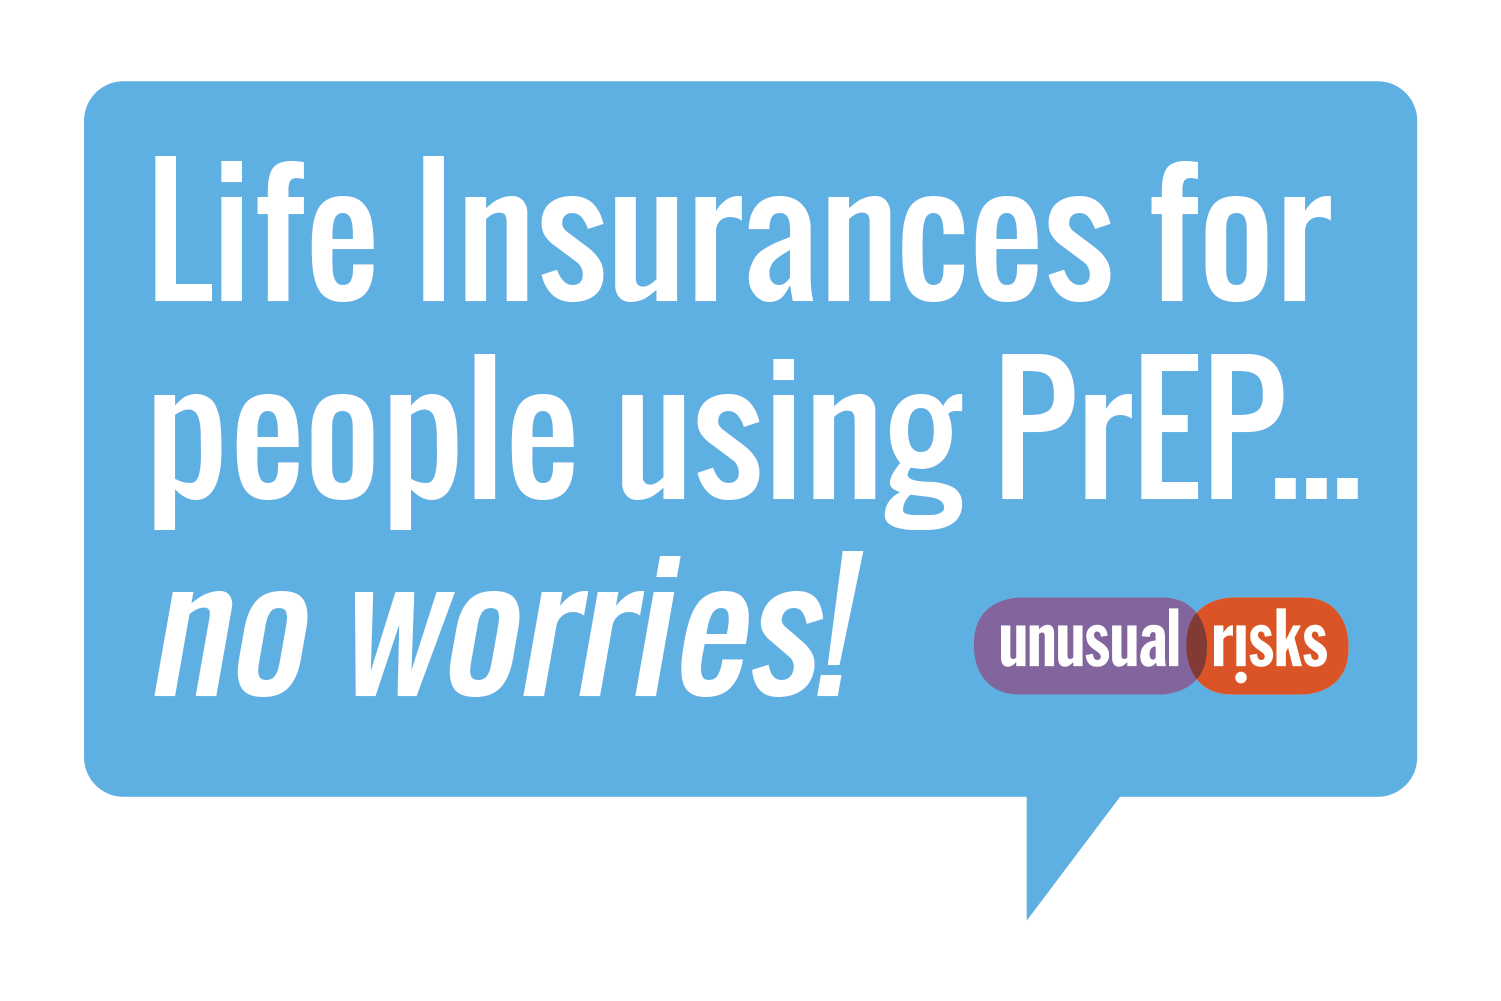 Life insurances for people using PrEP - No Worries!